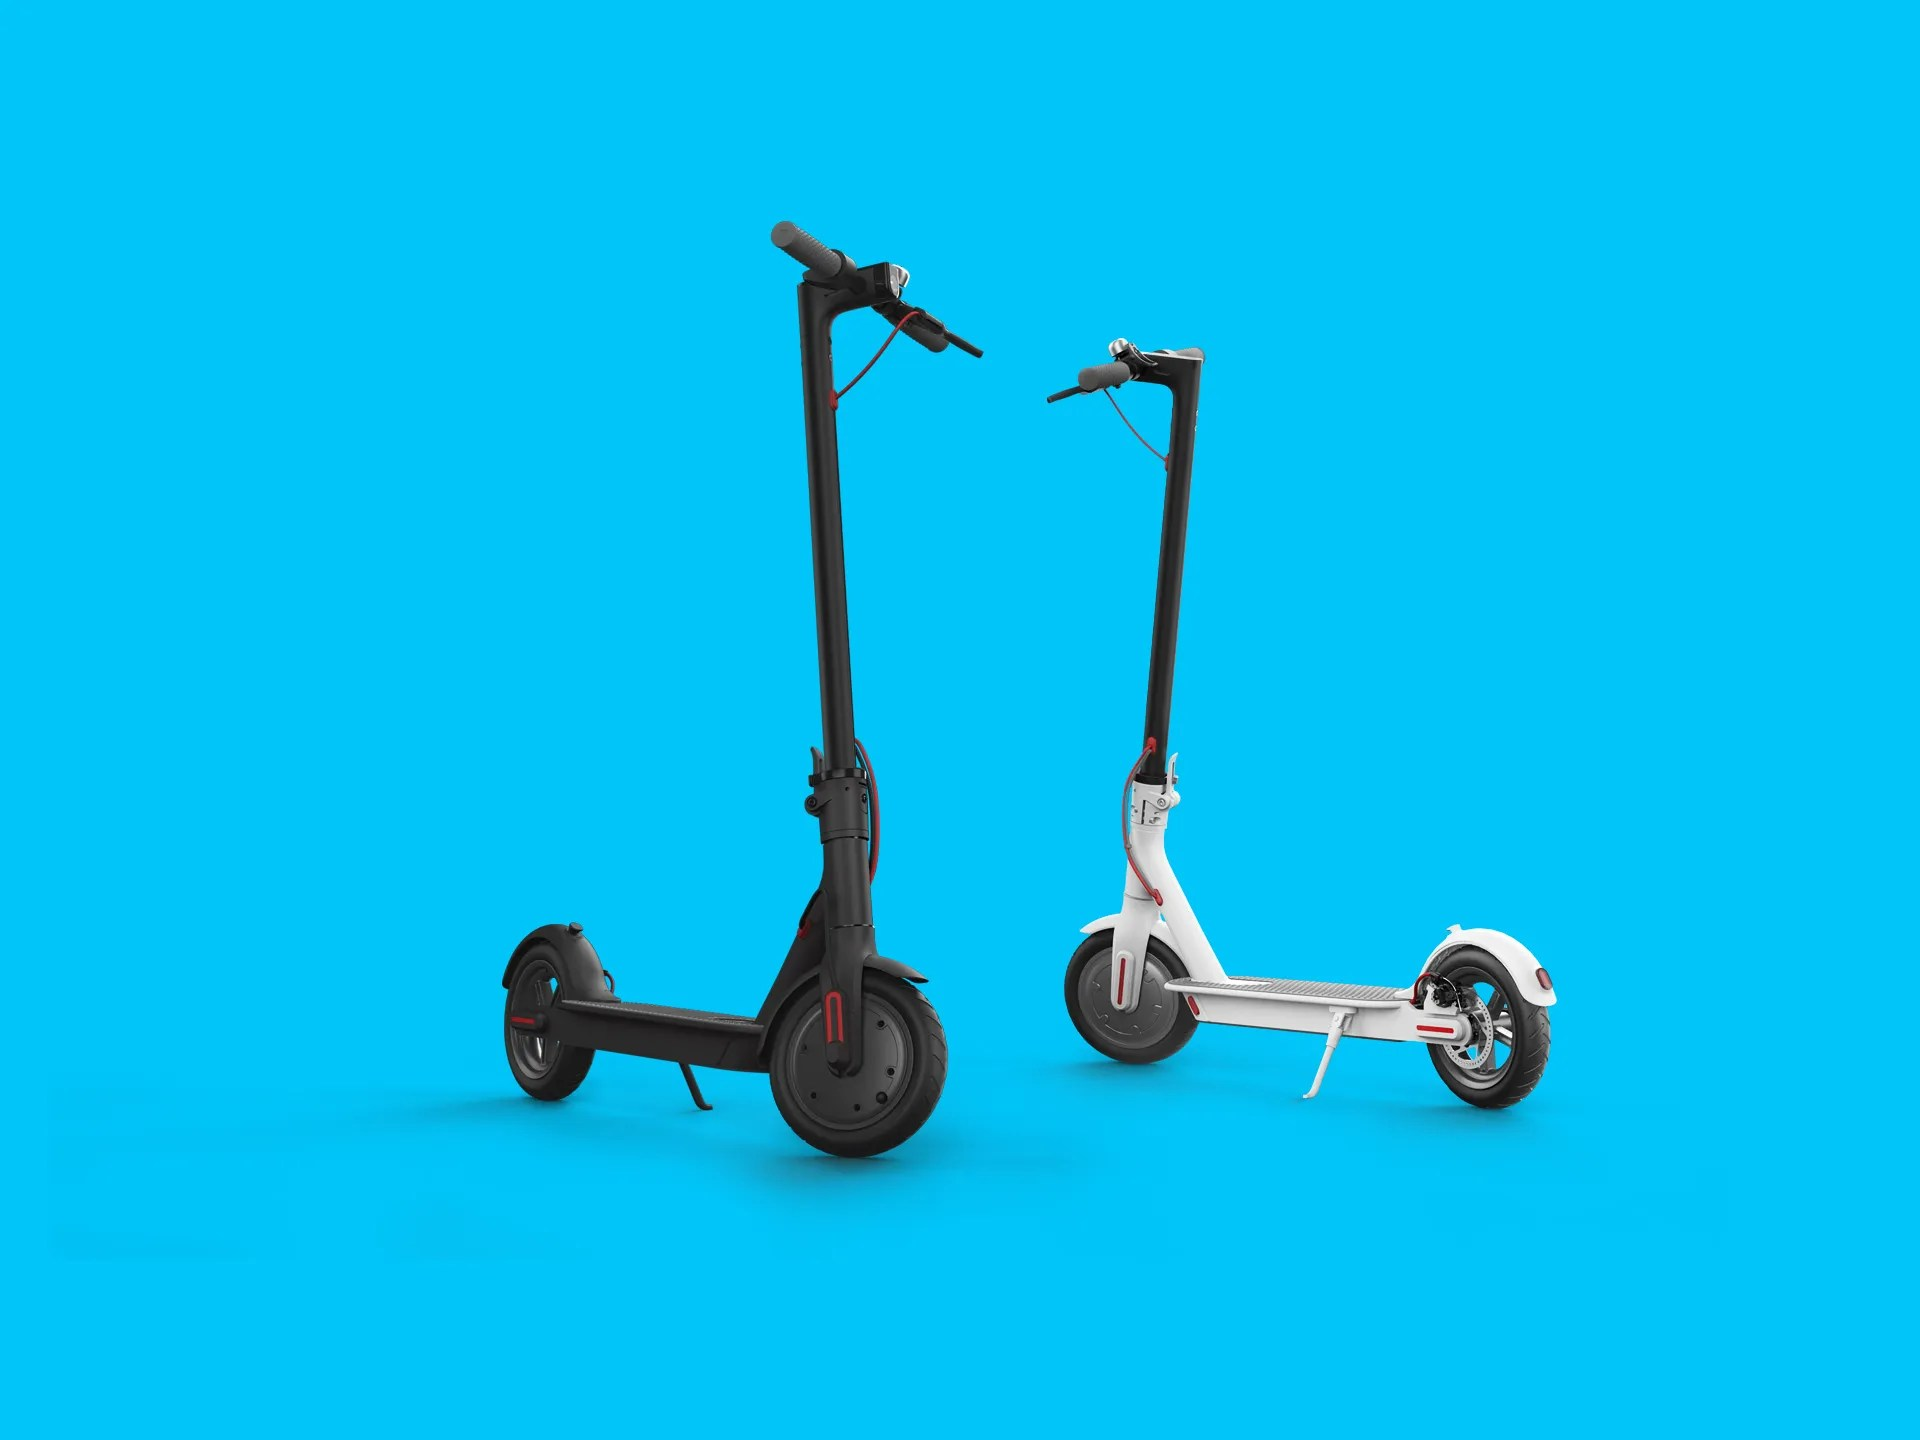 hight resolution of a popular electric scooter can be hacked to speed up or stop